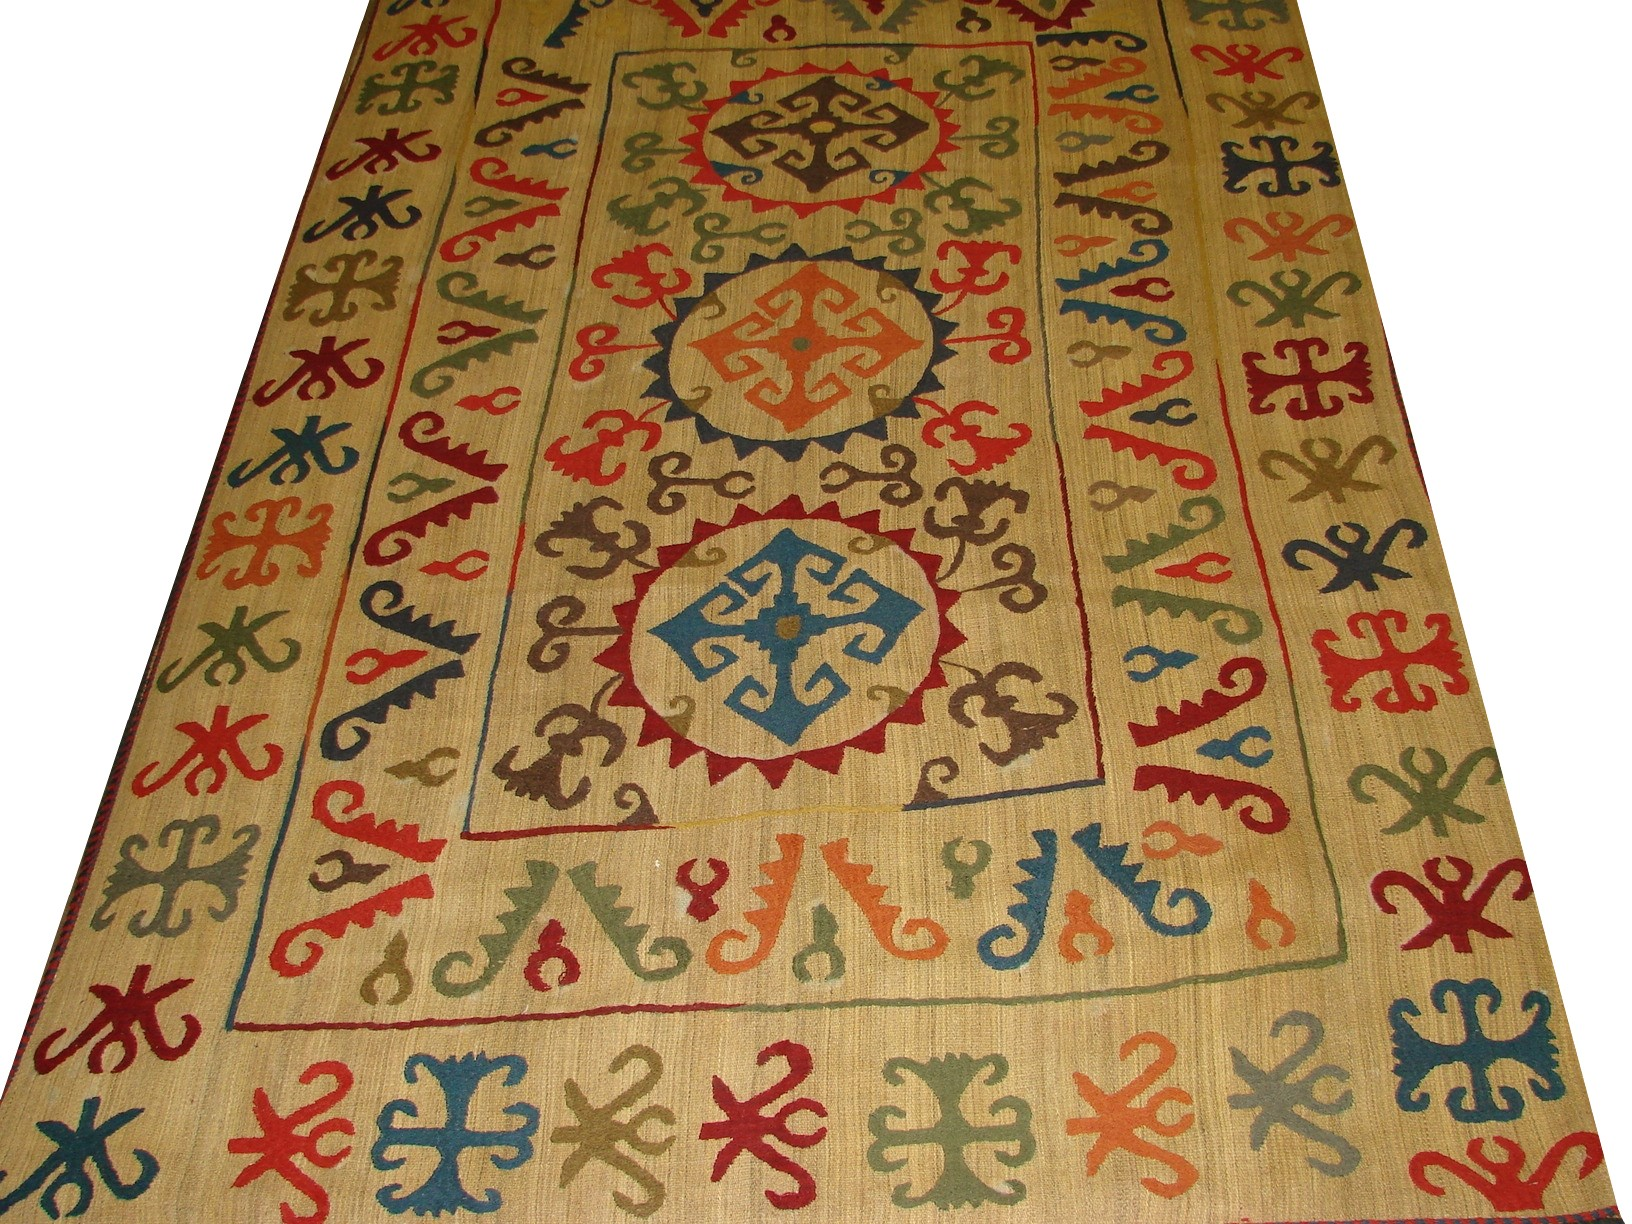 6x9 Flat Weave Hand Knotted Wool Area Rug - MR13179